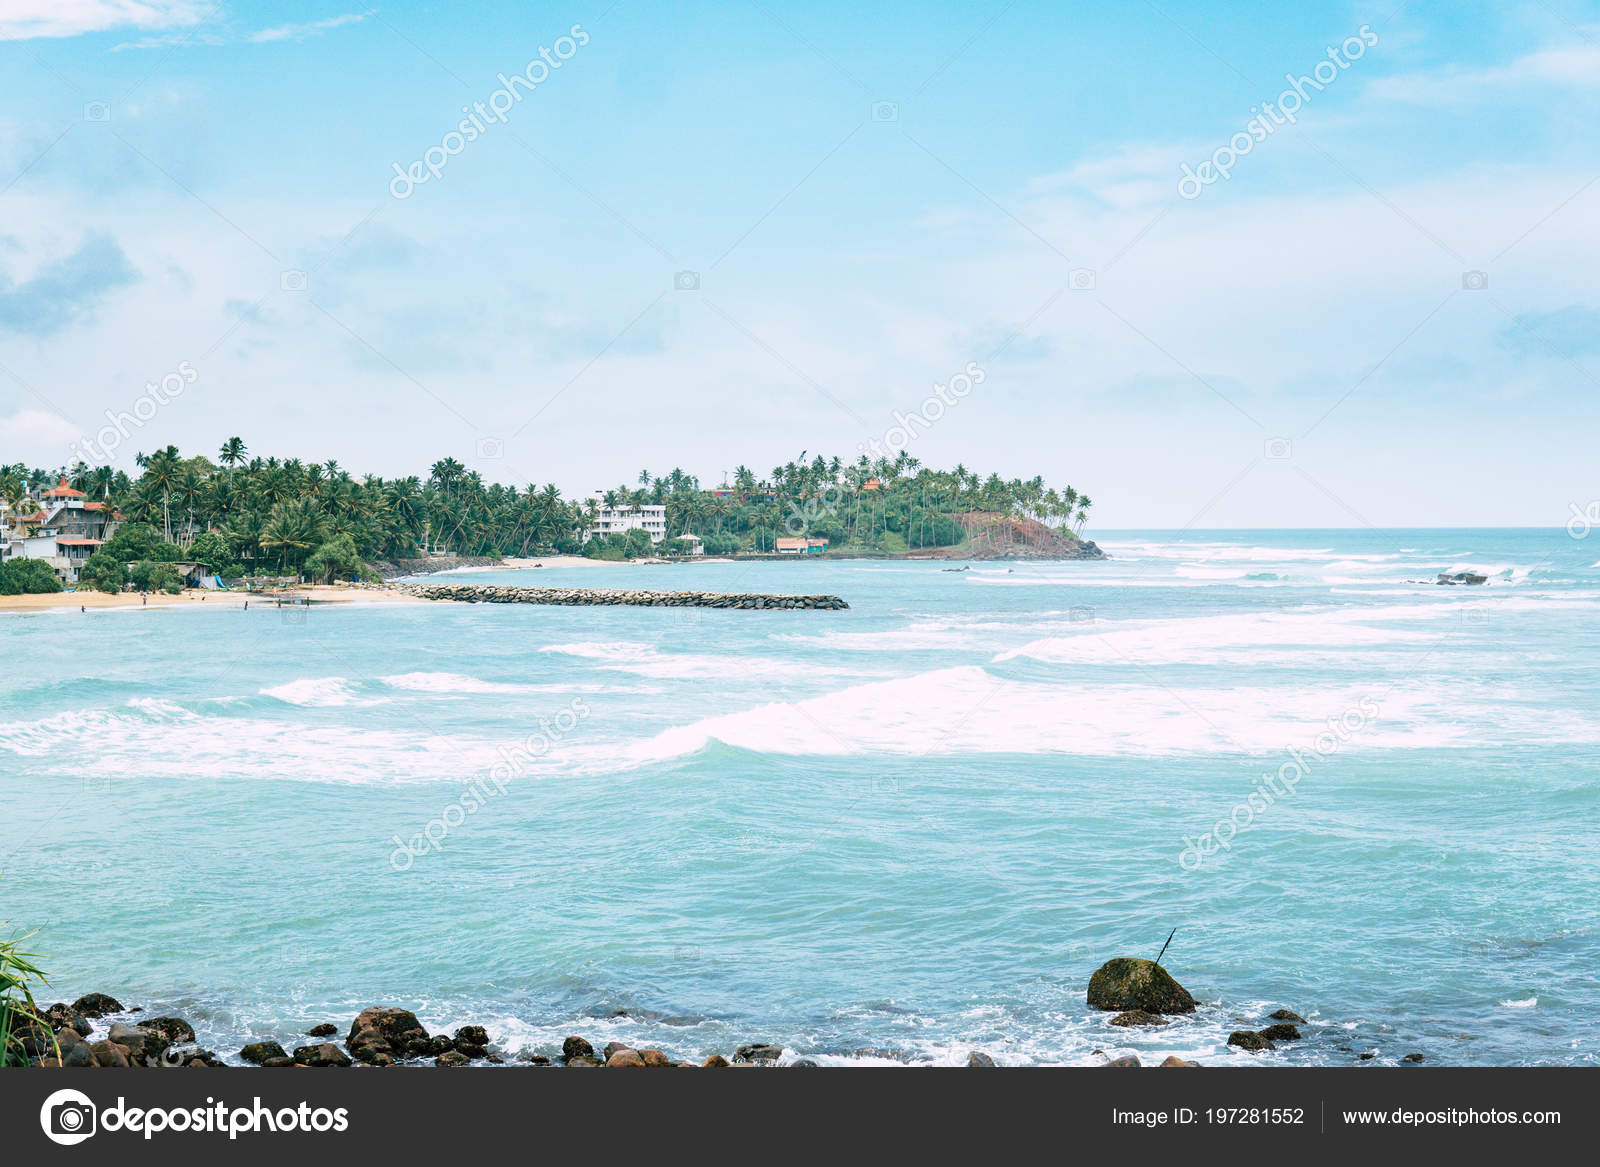 Beautiful Tropical Island Beach Landscape Fishing Boat In Transparent Blue Ocean Fresh Green Palm Trees Travel And Tourism Concept Photo By Cendeced